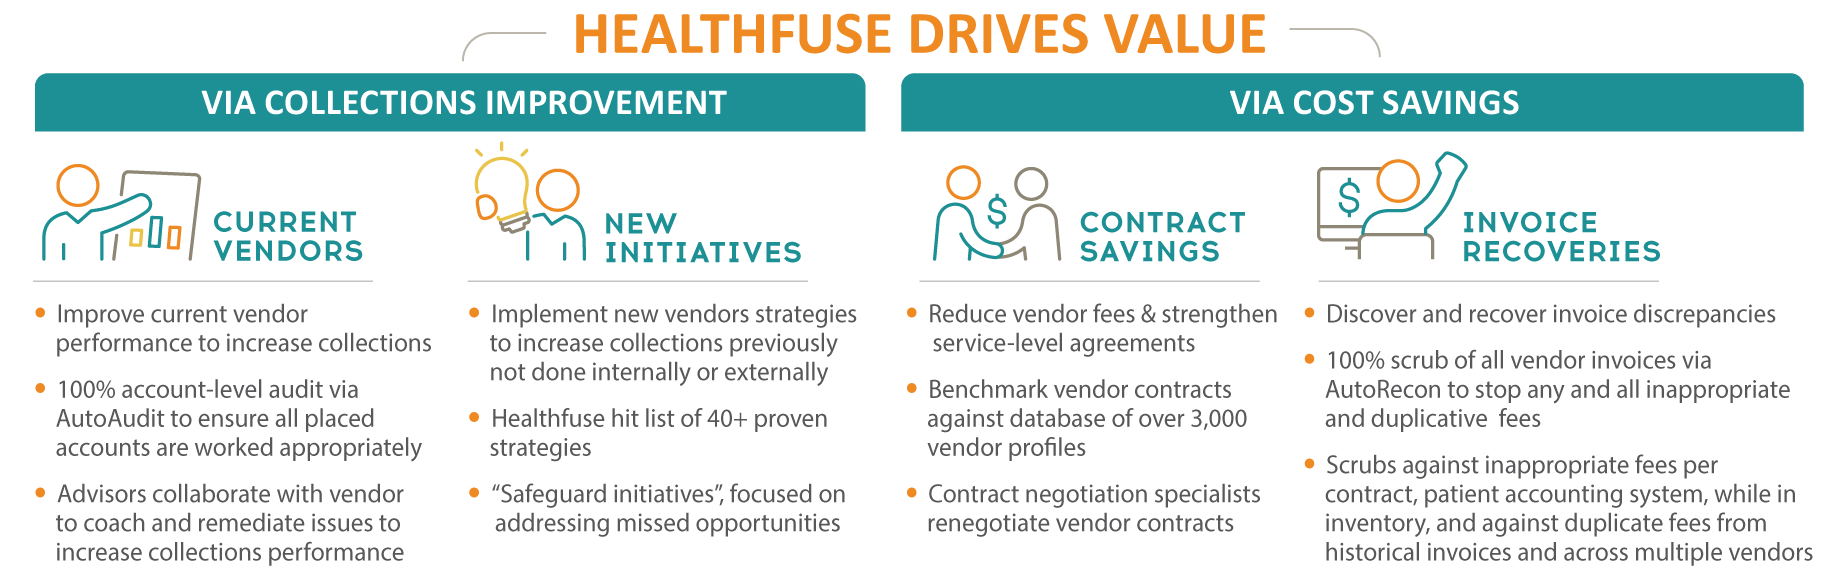 Figure: Healthfuse Drives Value: Healthfuse Value Levers